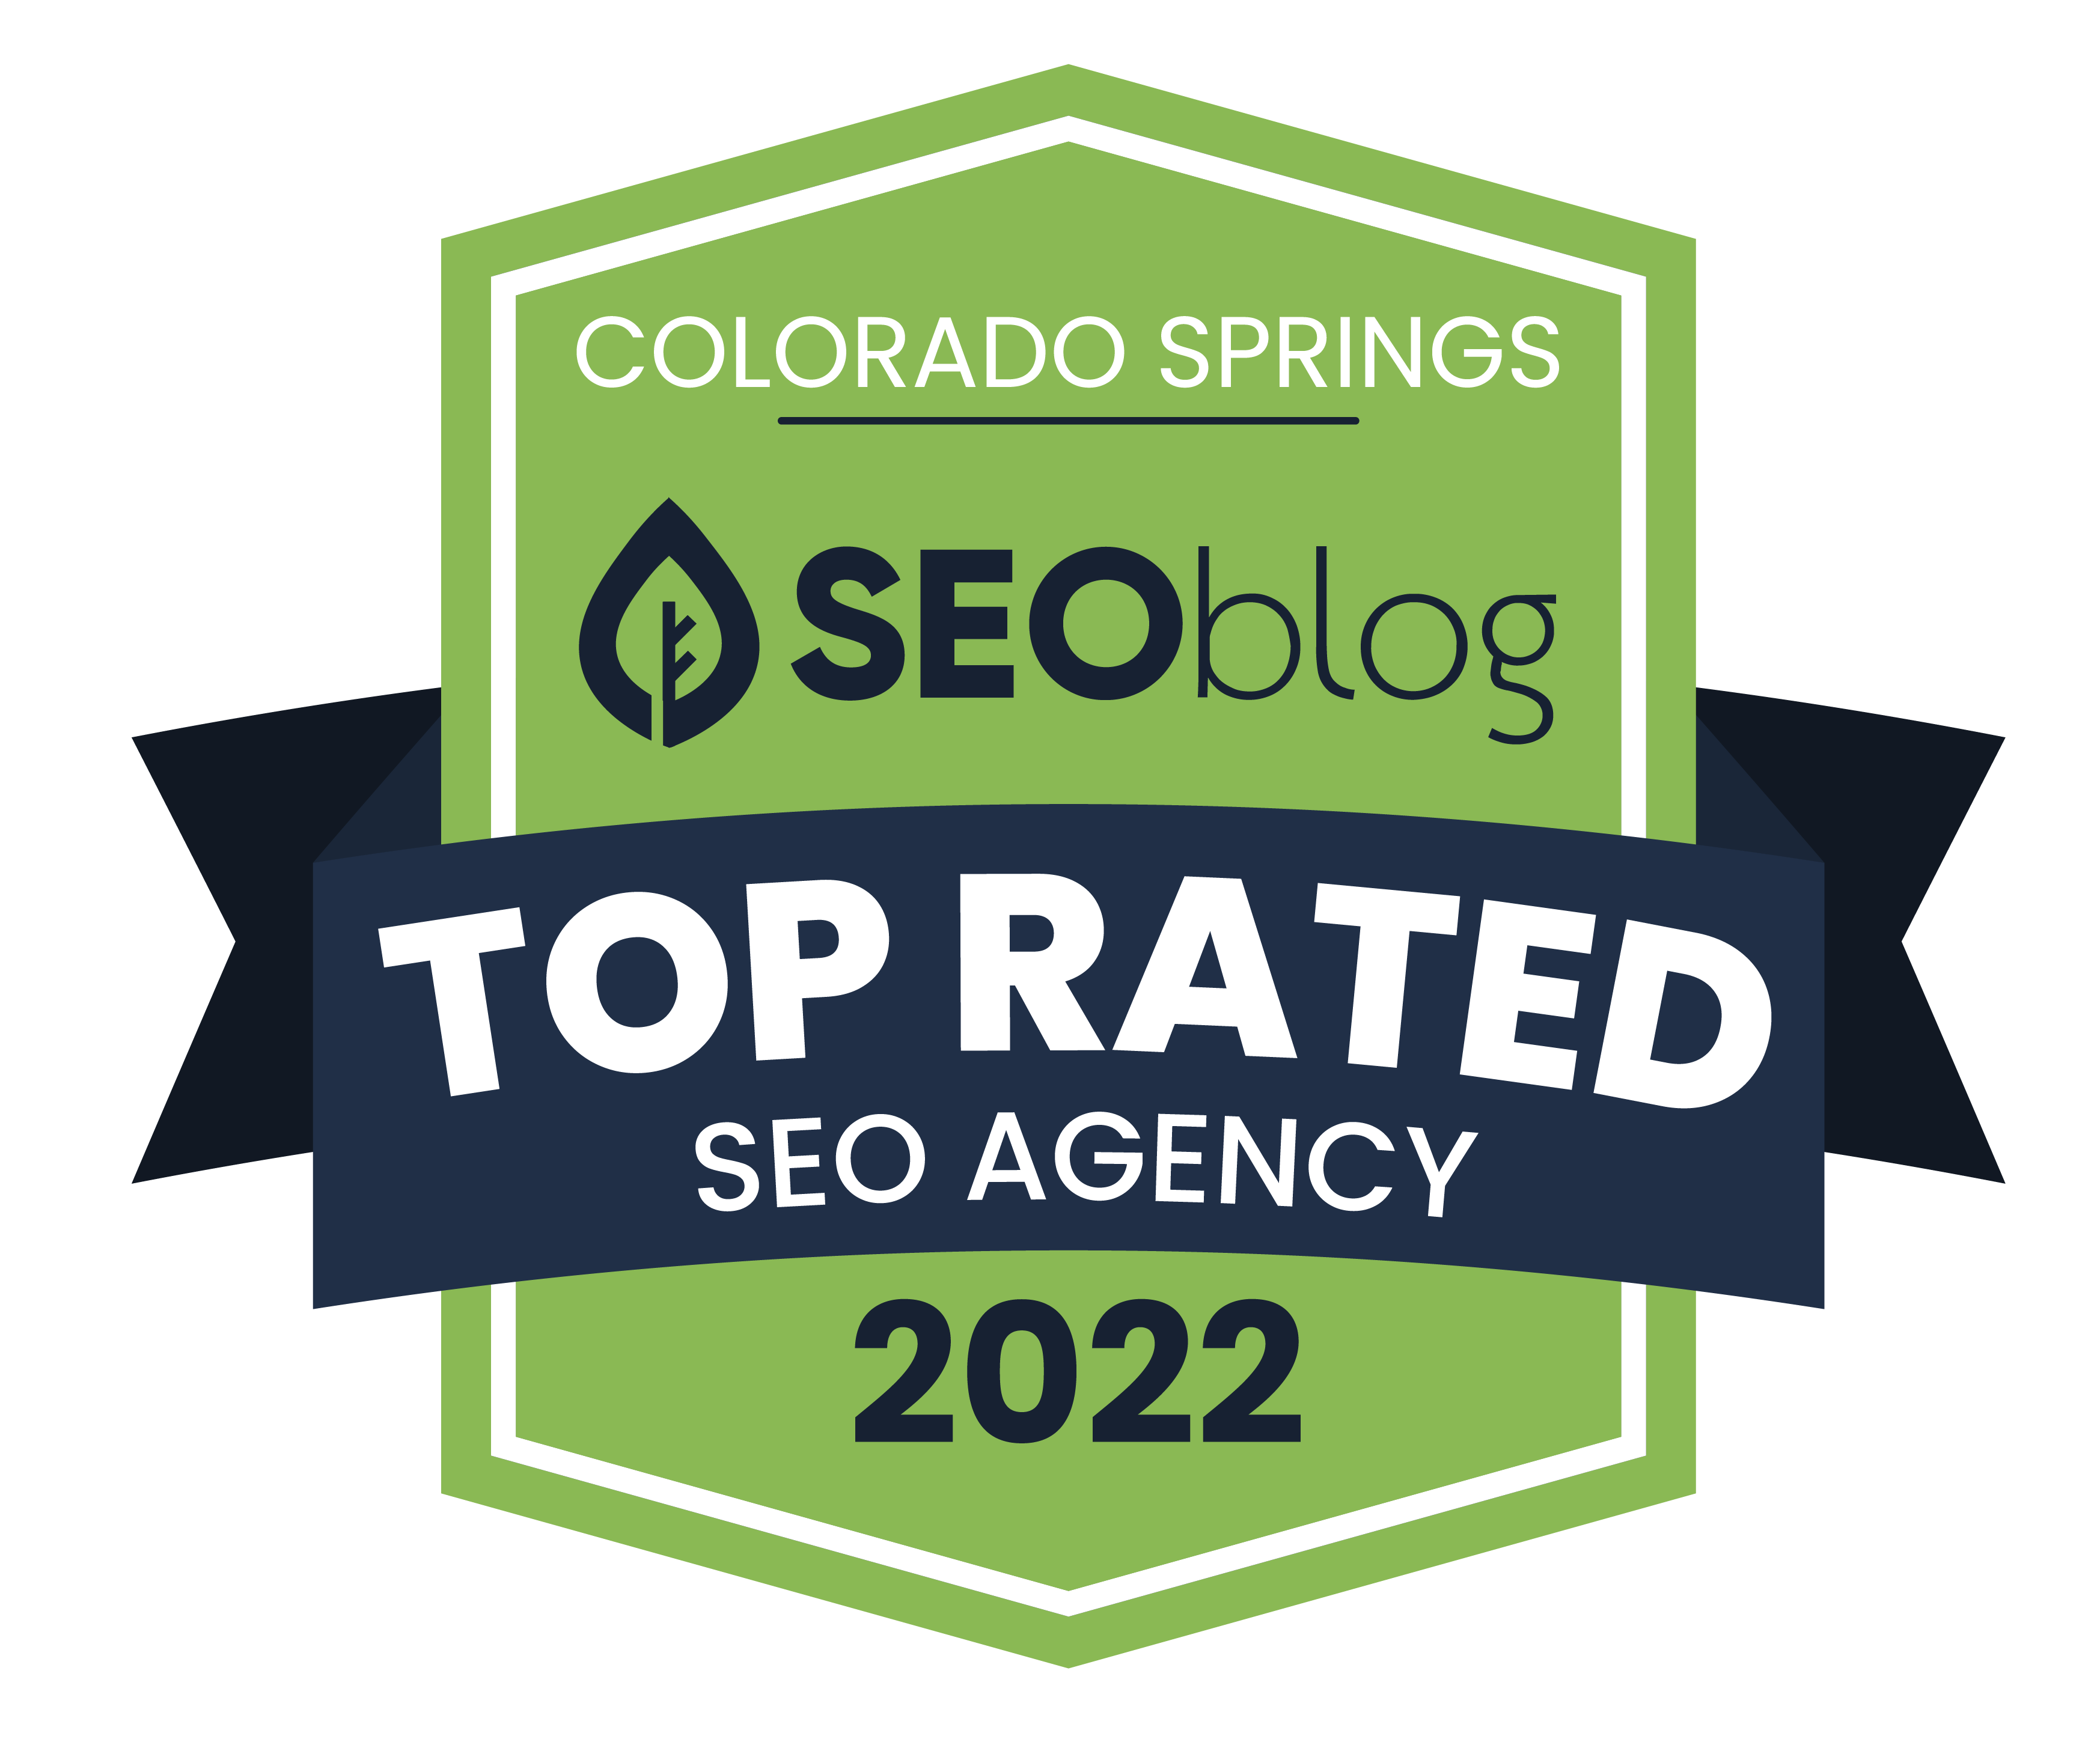 Colorado Springs SEO Agency